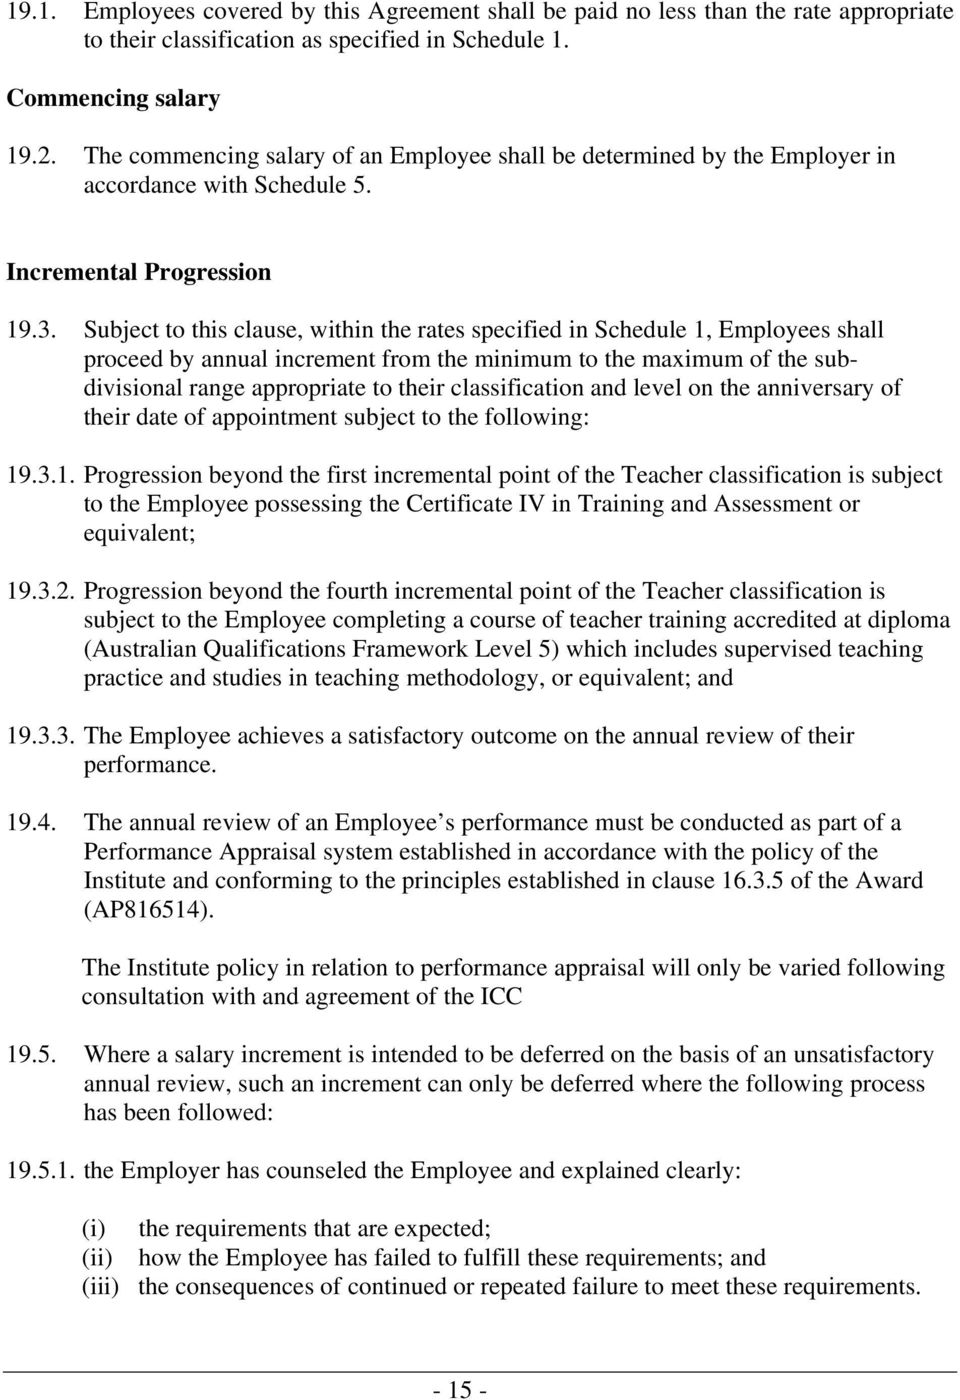 Subject to this clause, within the rates specified in Schedule 1, Employees shall proceed by annual increment from the minimum to the maximum of the subdivisional range appropriate to their